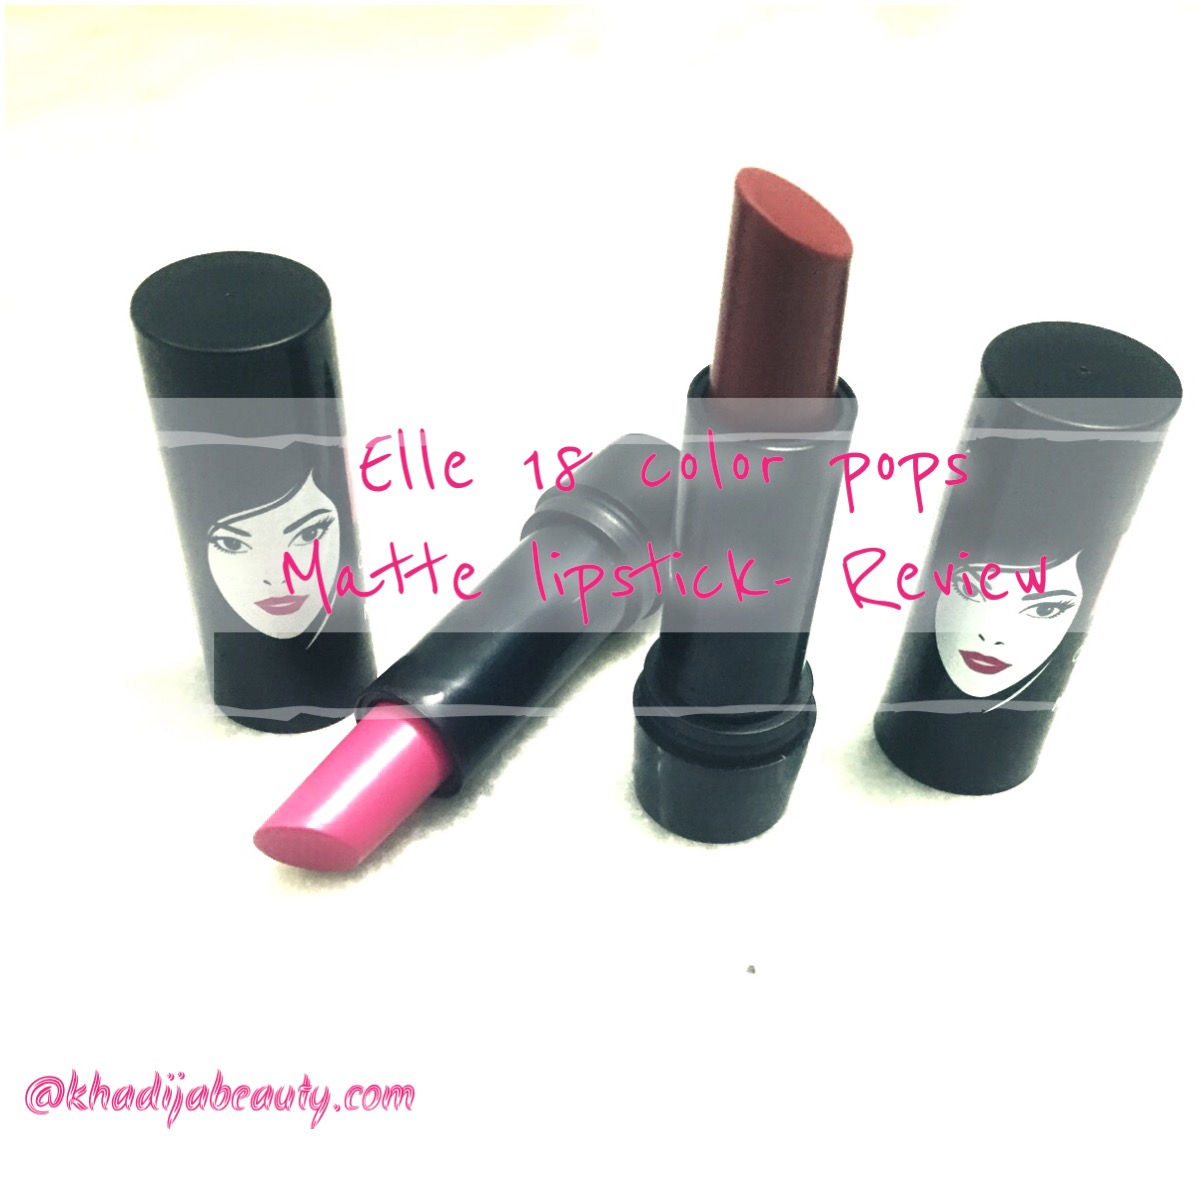 ELLE 18 COLOR POPS MATTE LIPSTICKS- REVIEW